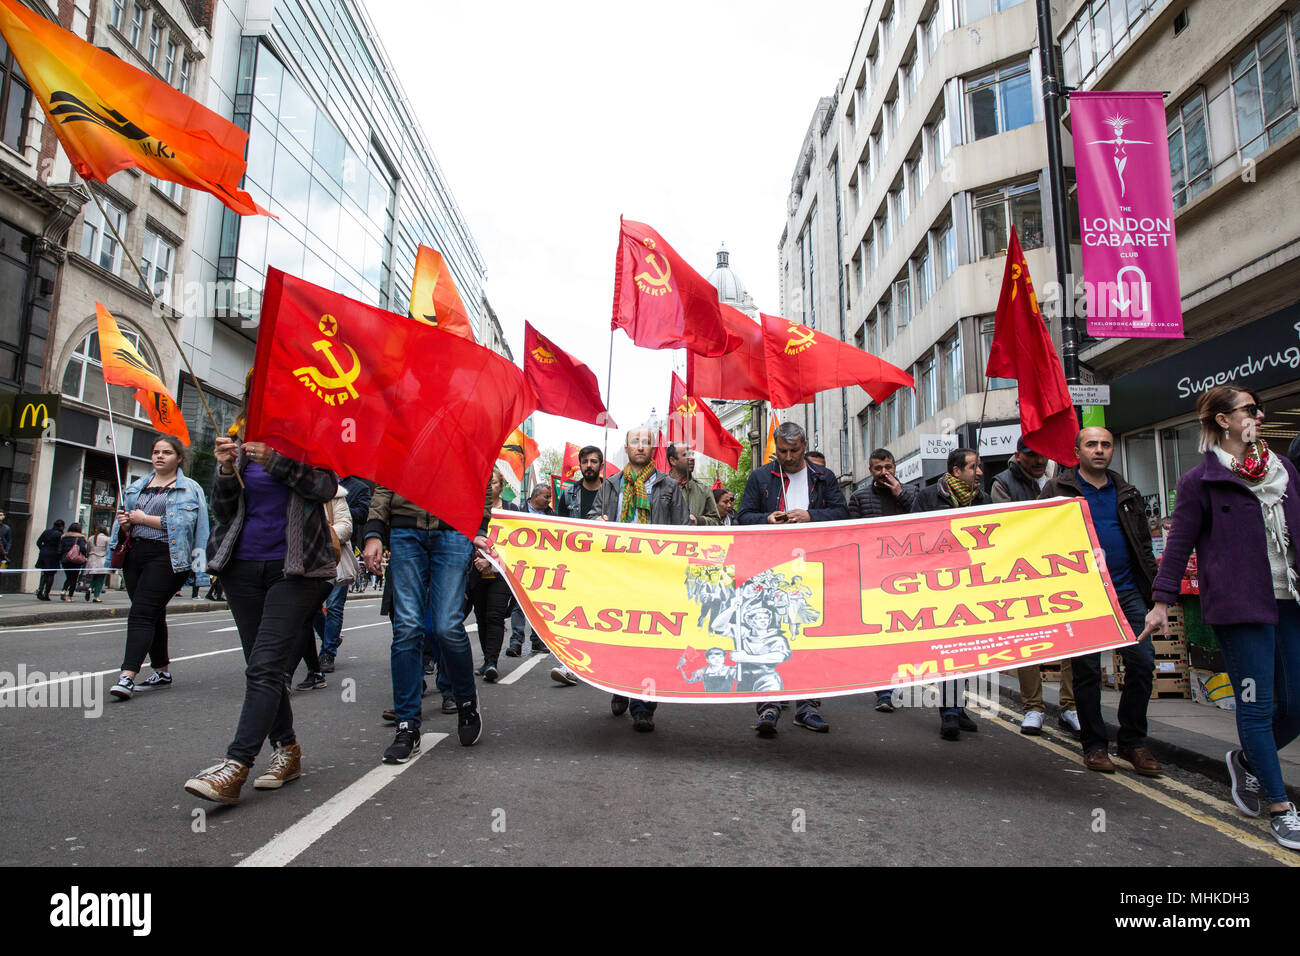 London, UK. 1st May, 2018. Supporters of the Turkish Communist Party take part in the annual May Day march to mark International Workers' Day. Credit: Mark Kerrison/Alamy Live News - Stock Image